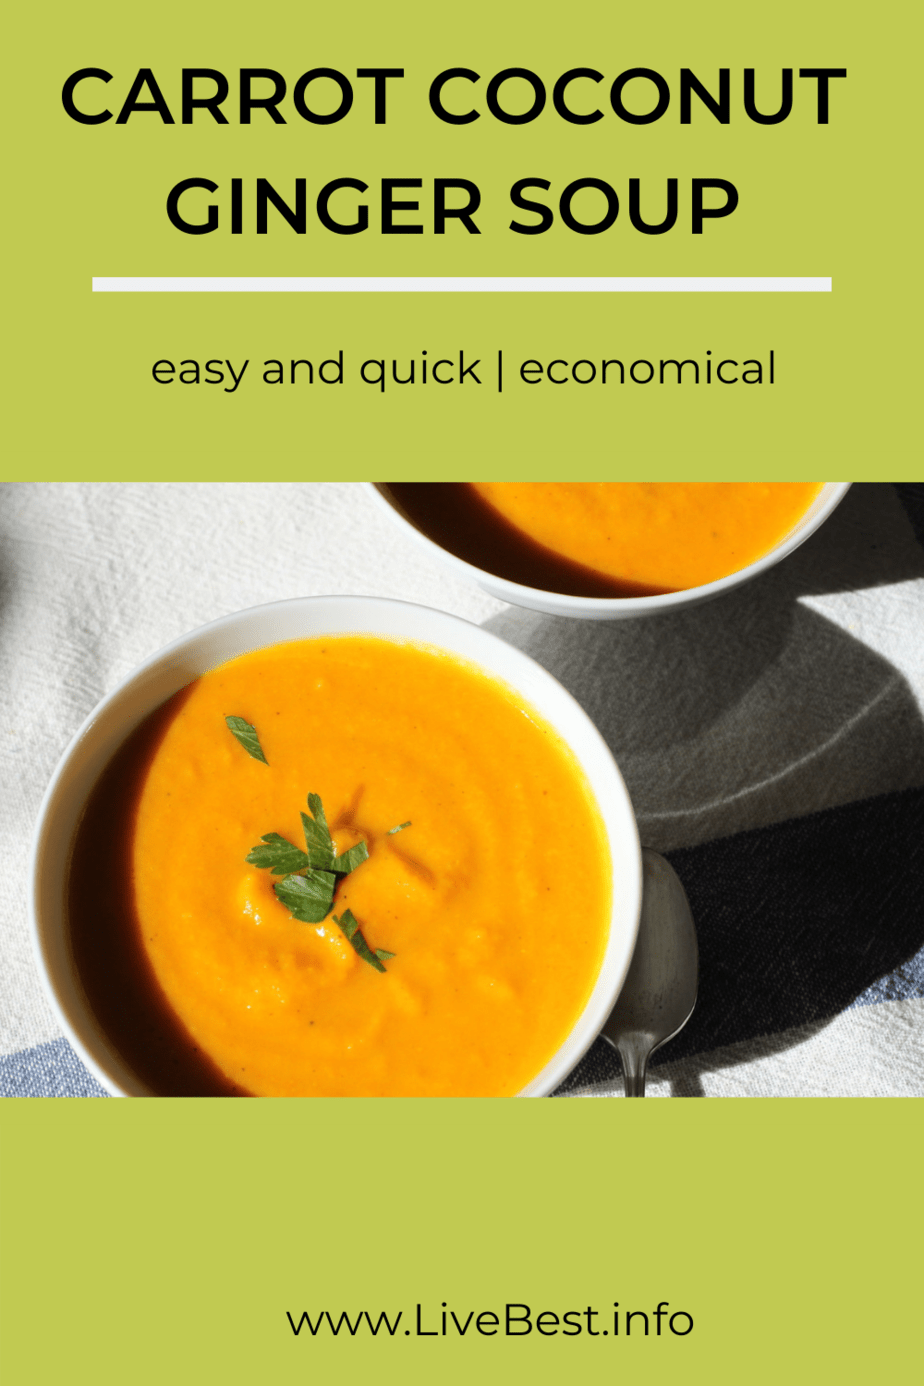 two bowls of carrot coconut ginger soup